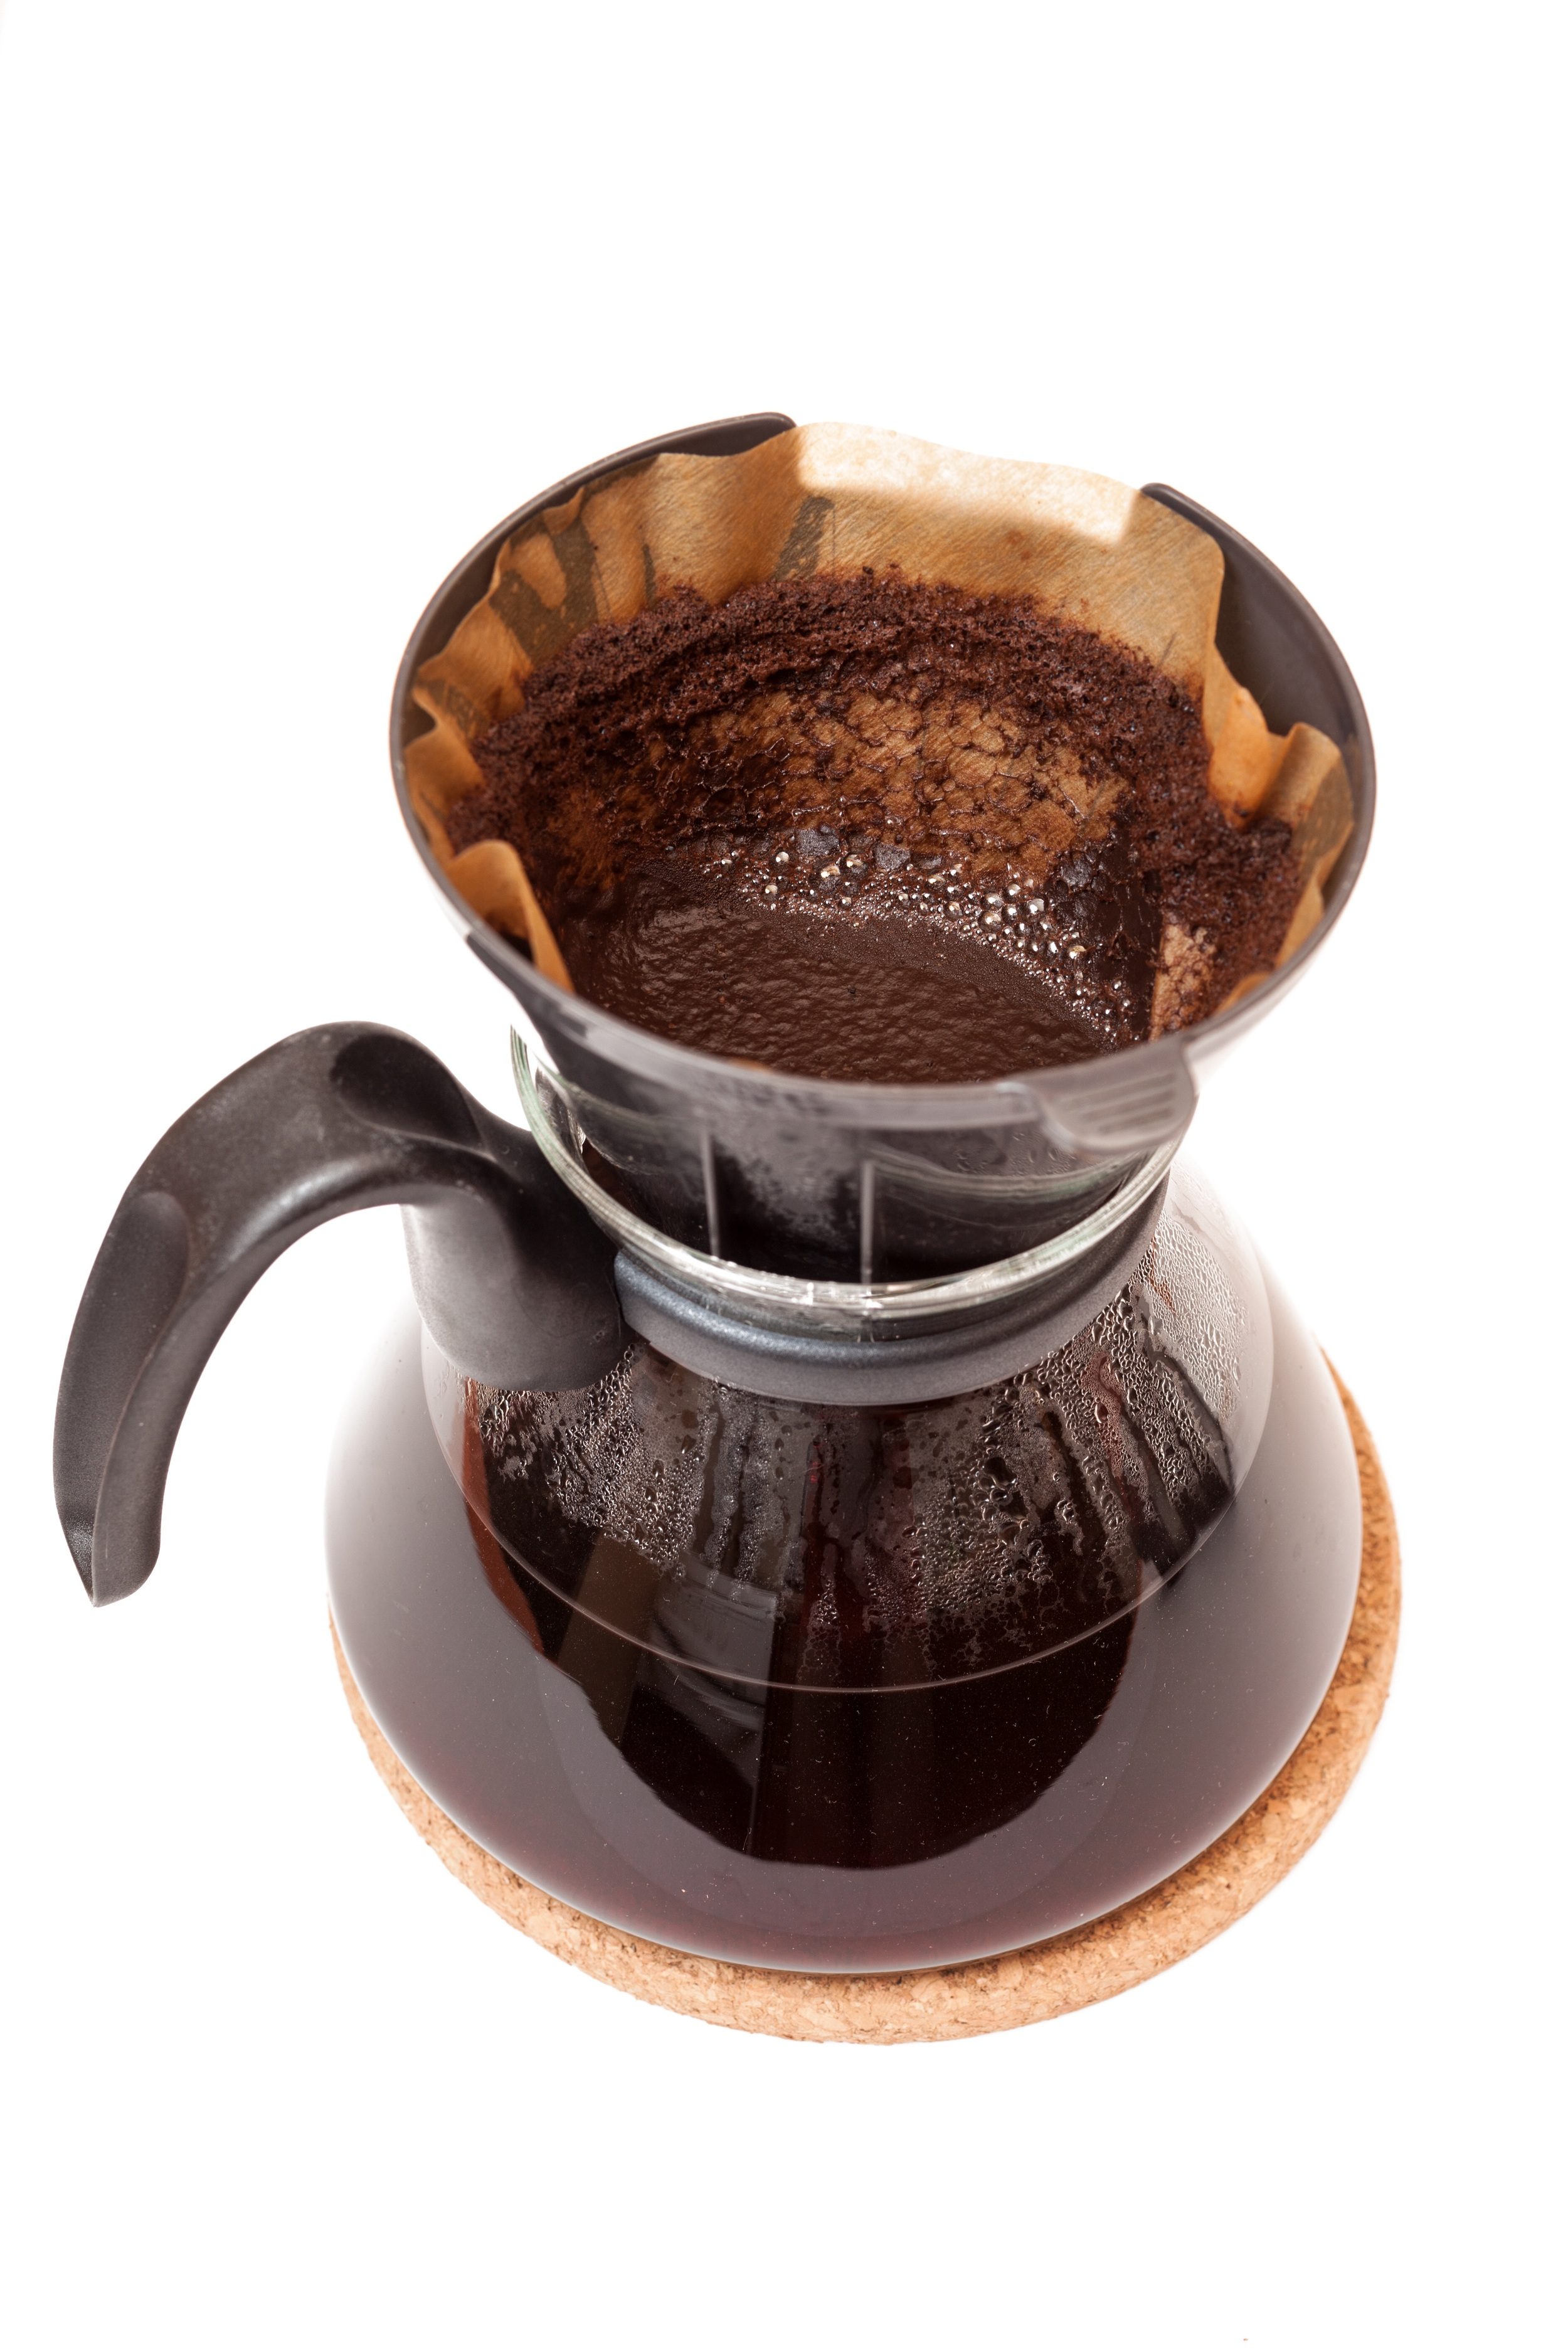 Drip or filter coffee is produced by passing boiled water over medium coarsely ground coffee held in a filter